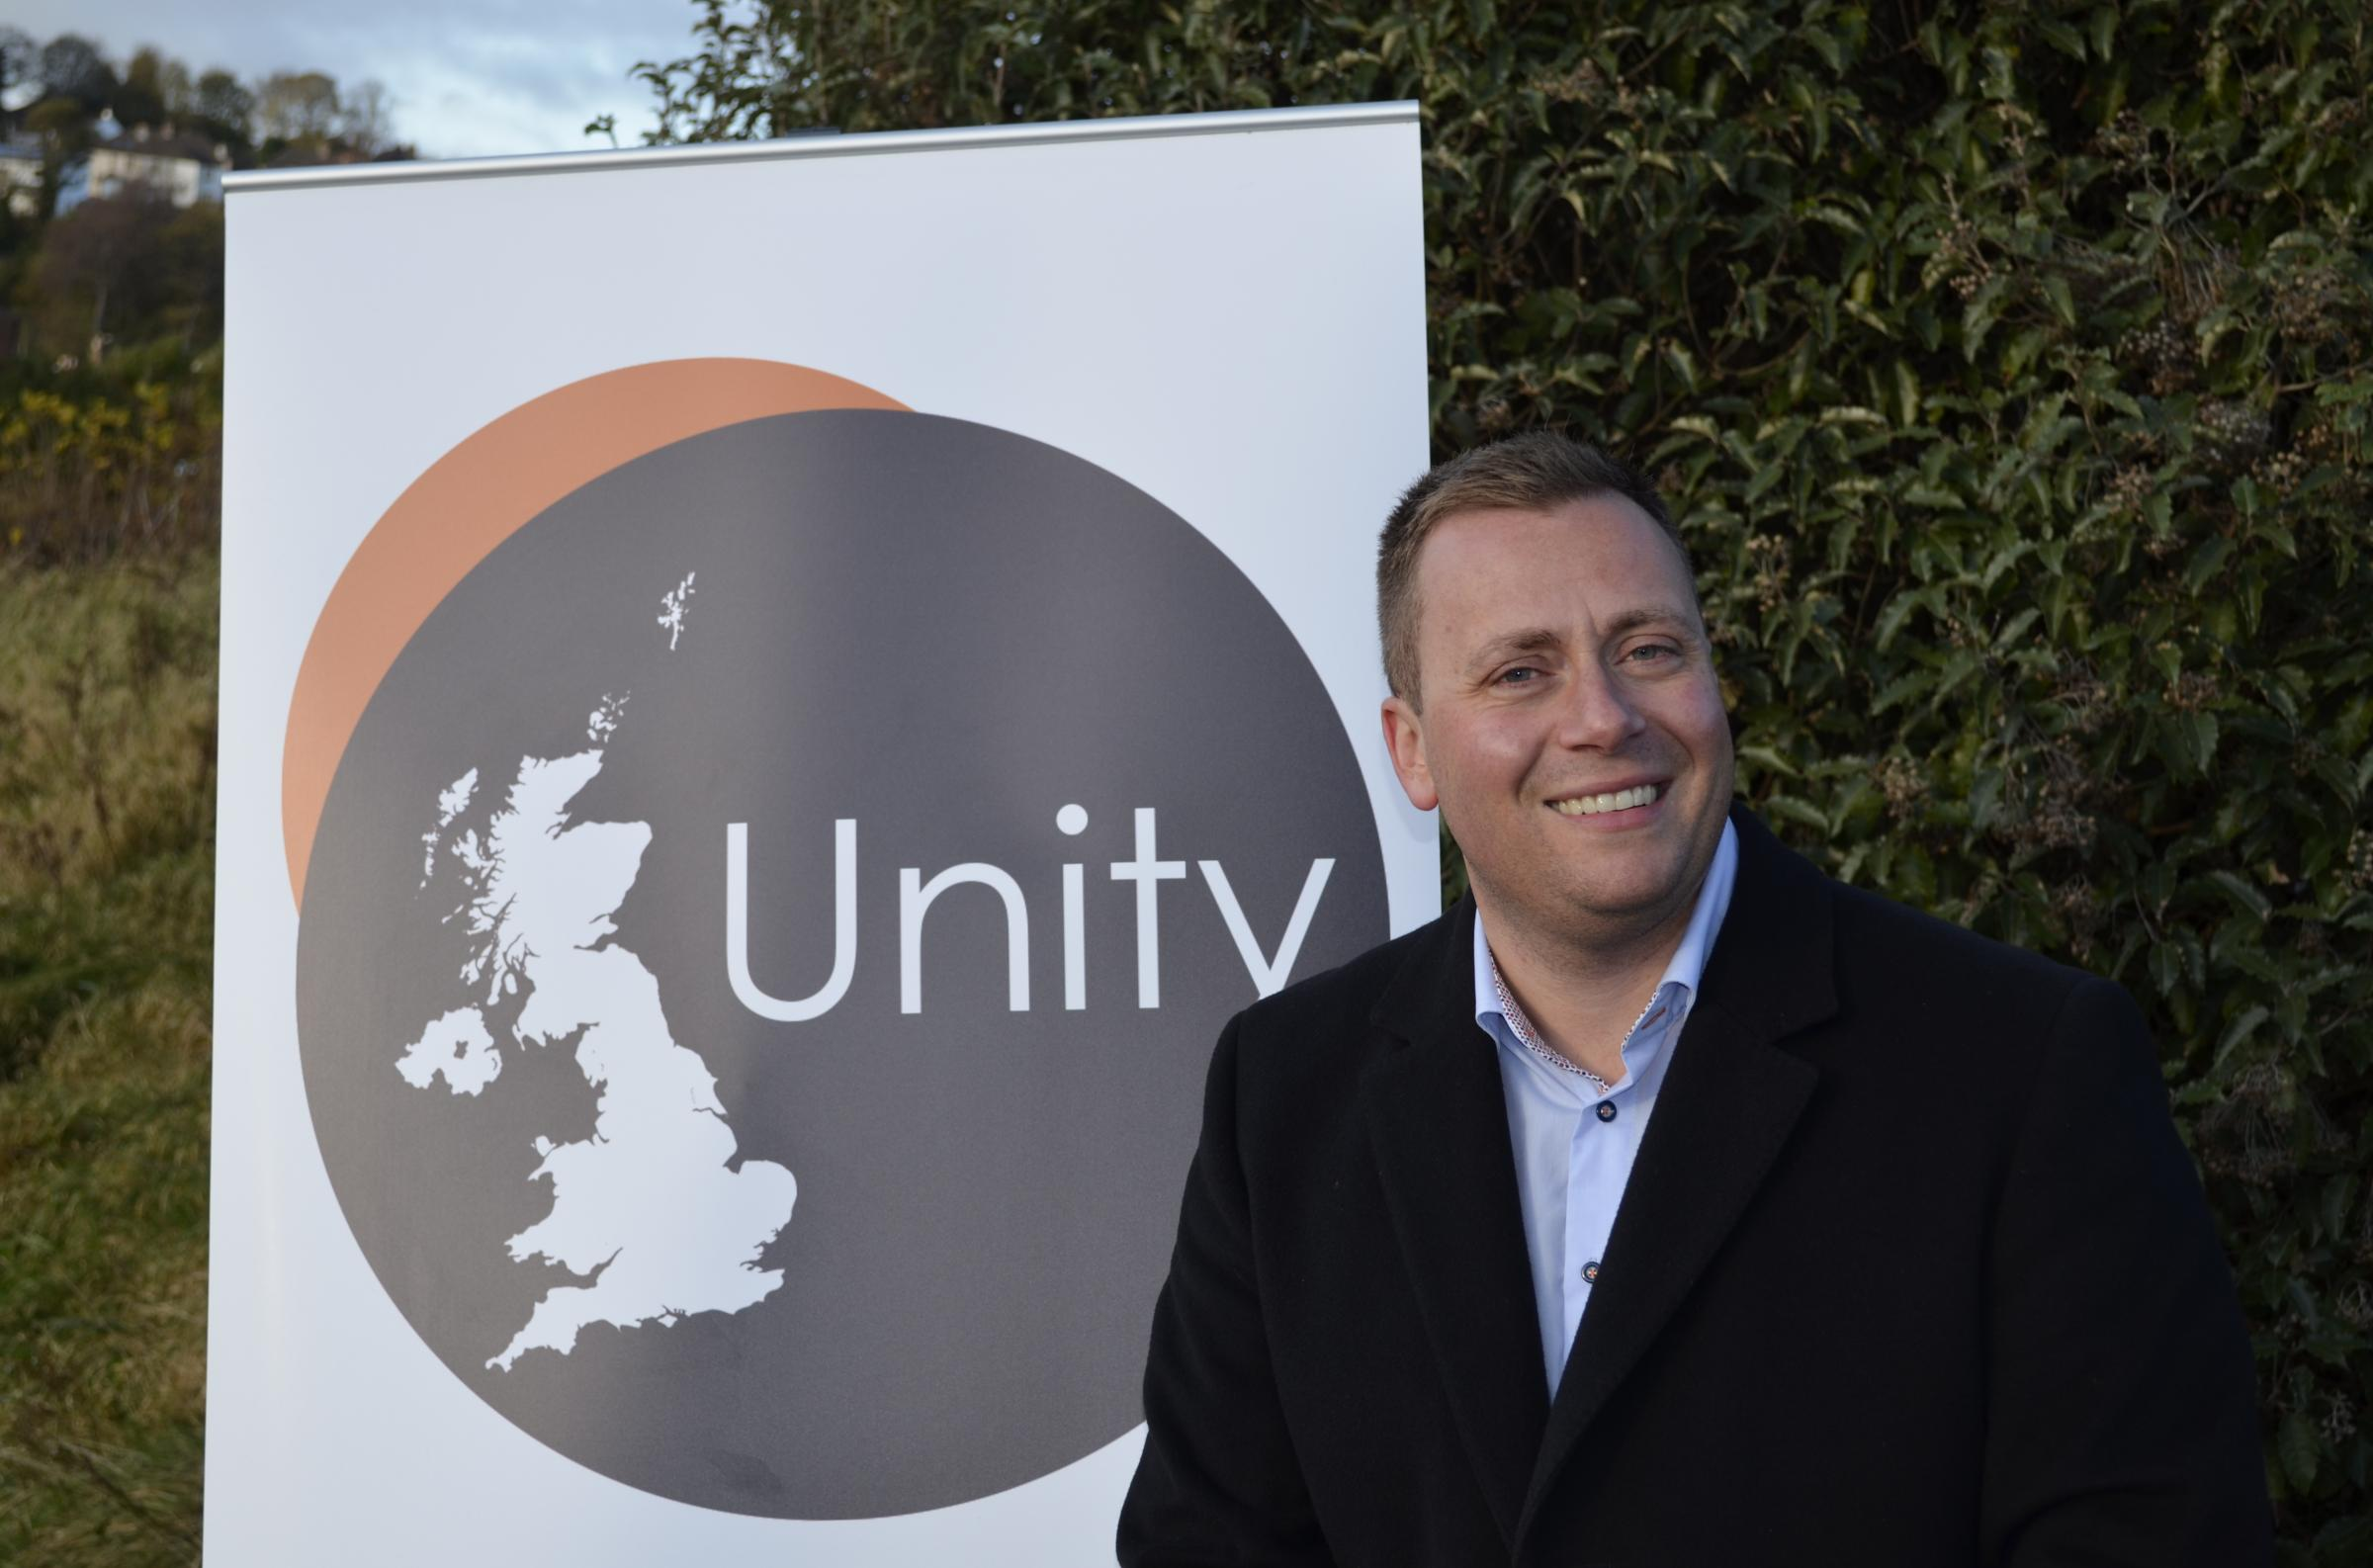 David Clews, spokesperson for UK Unity